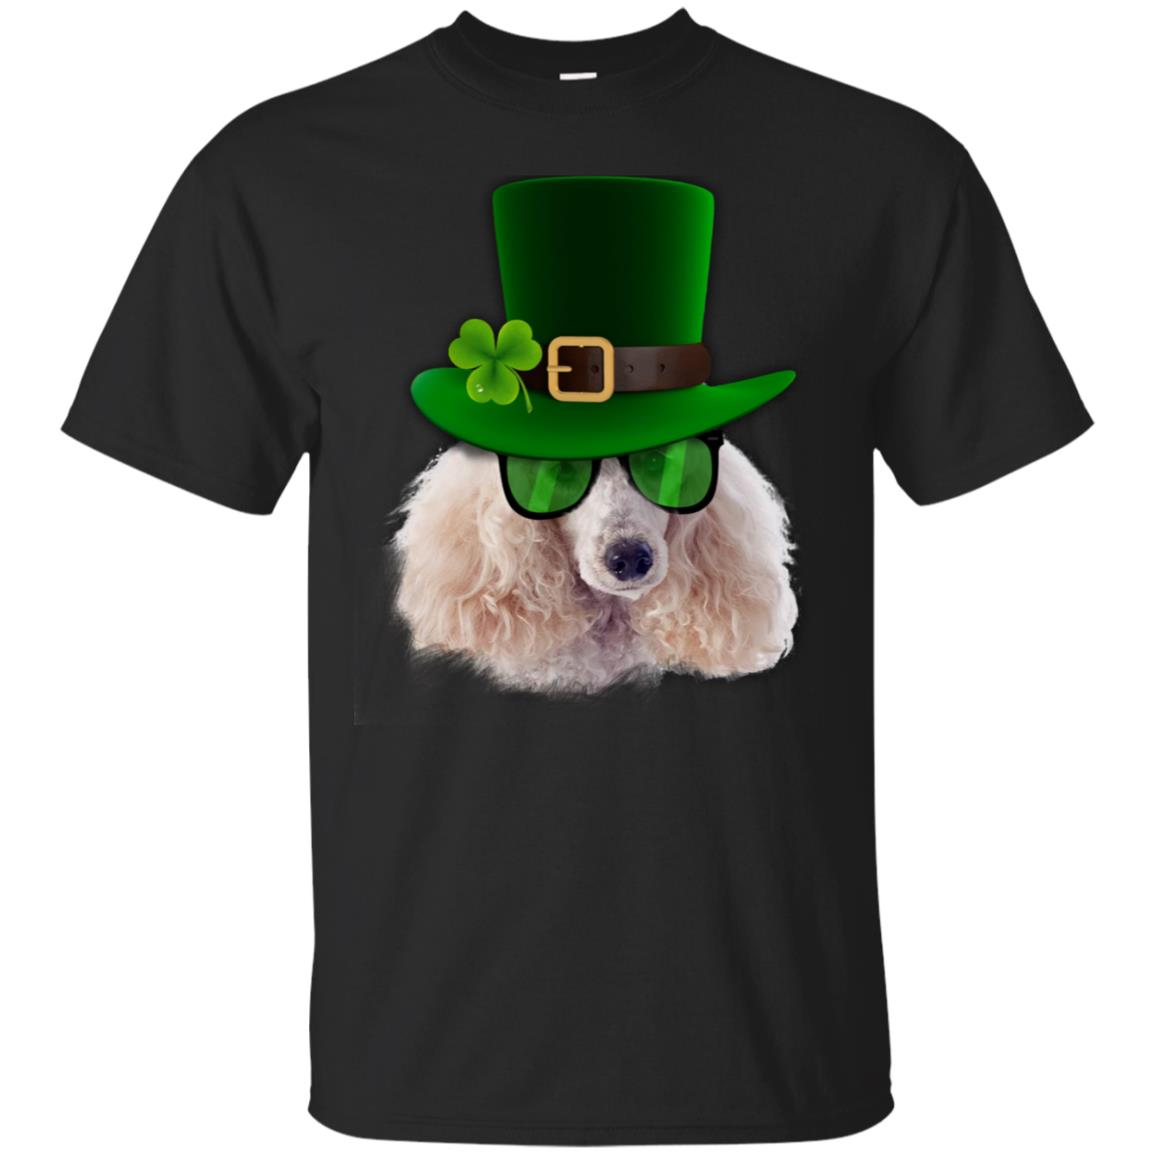 Poodle Patricks day shirt 99promocode